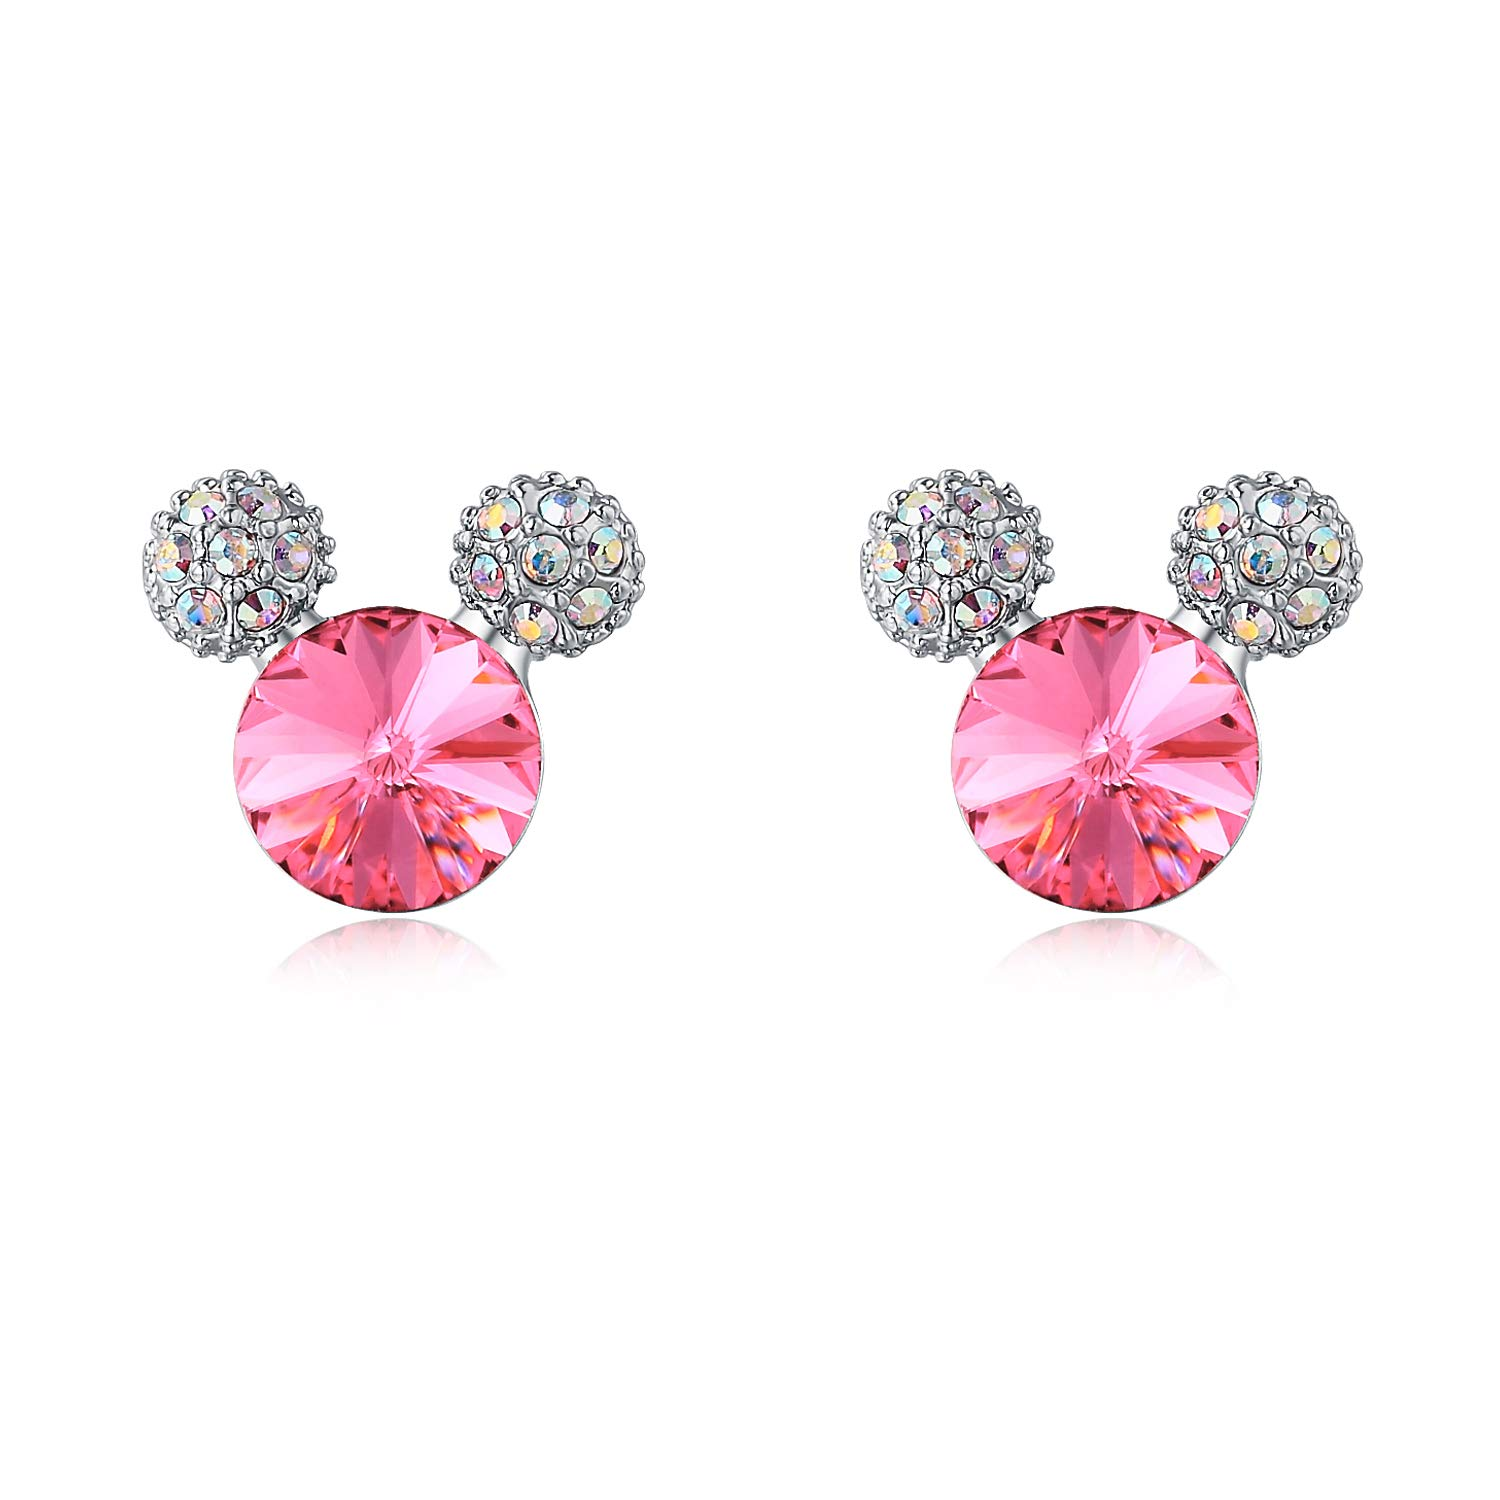 HERAYLI Mouse Stud Earrings for Girls/Women,Made with Swarovski Crystal Lovely Earrings Jewelry Gift (Pink)